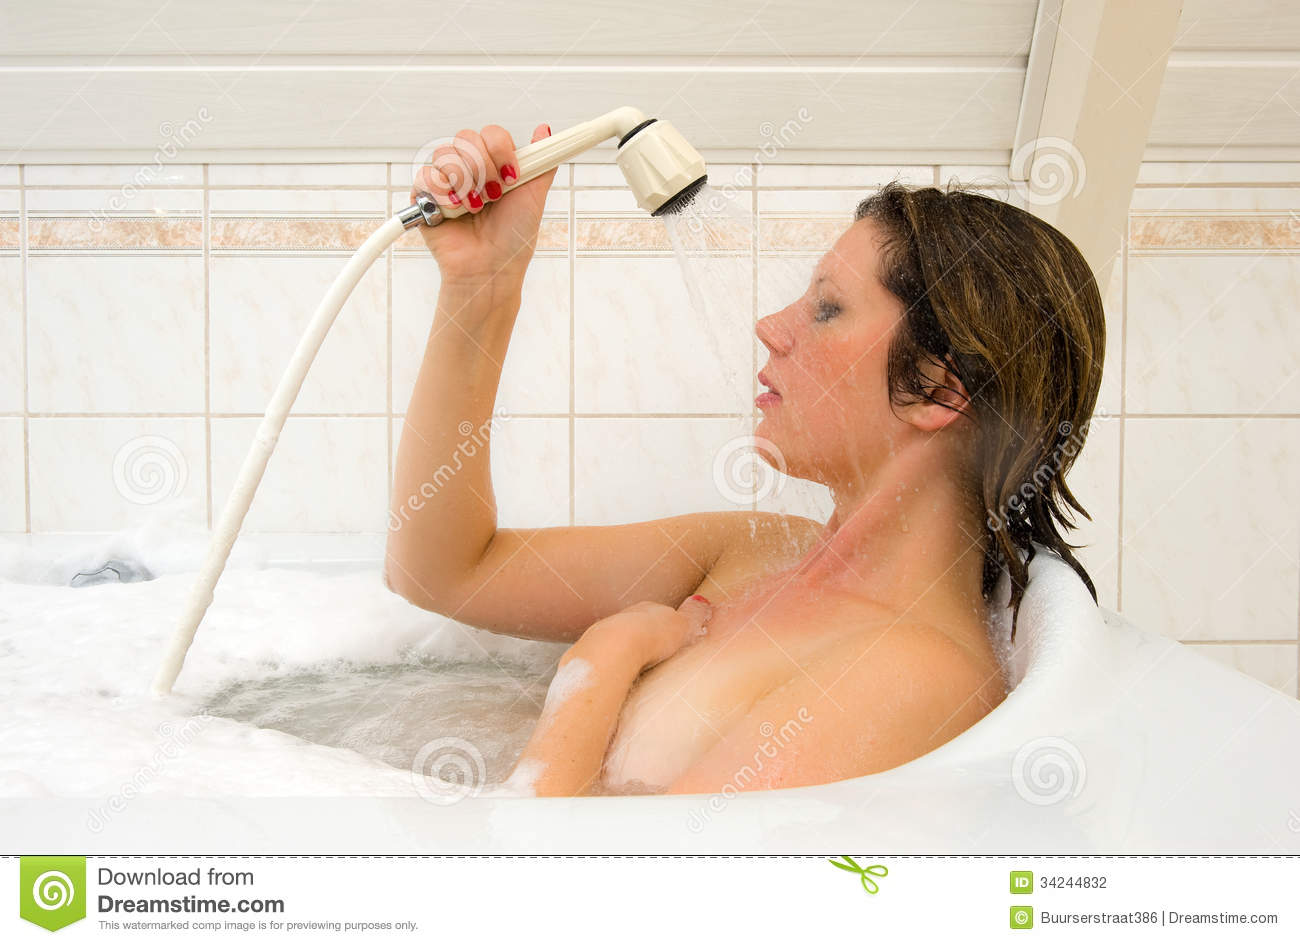 Enjoying a hot bath stock photo. Image of private, bathroom - 34244832